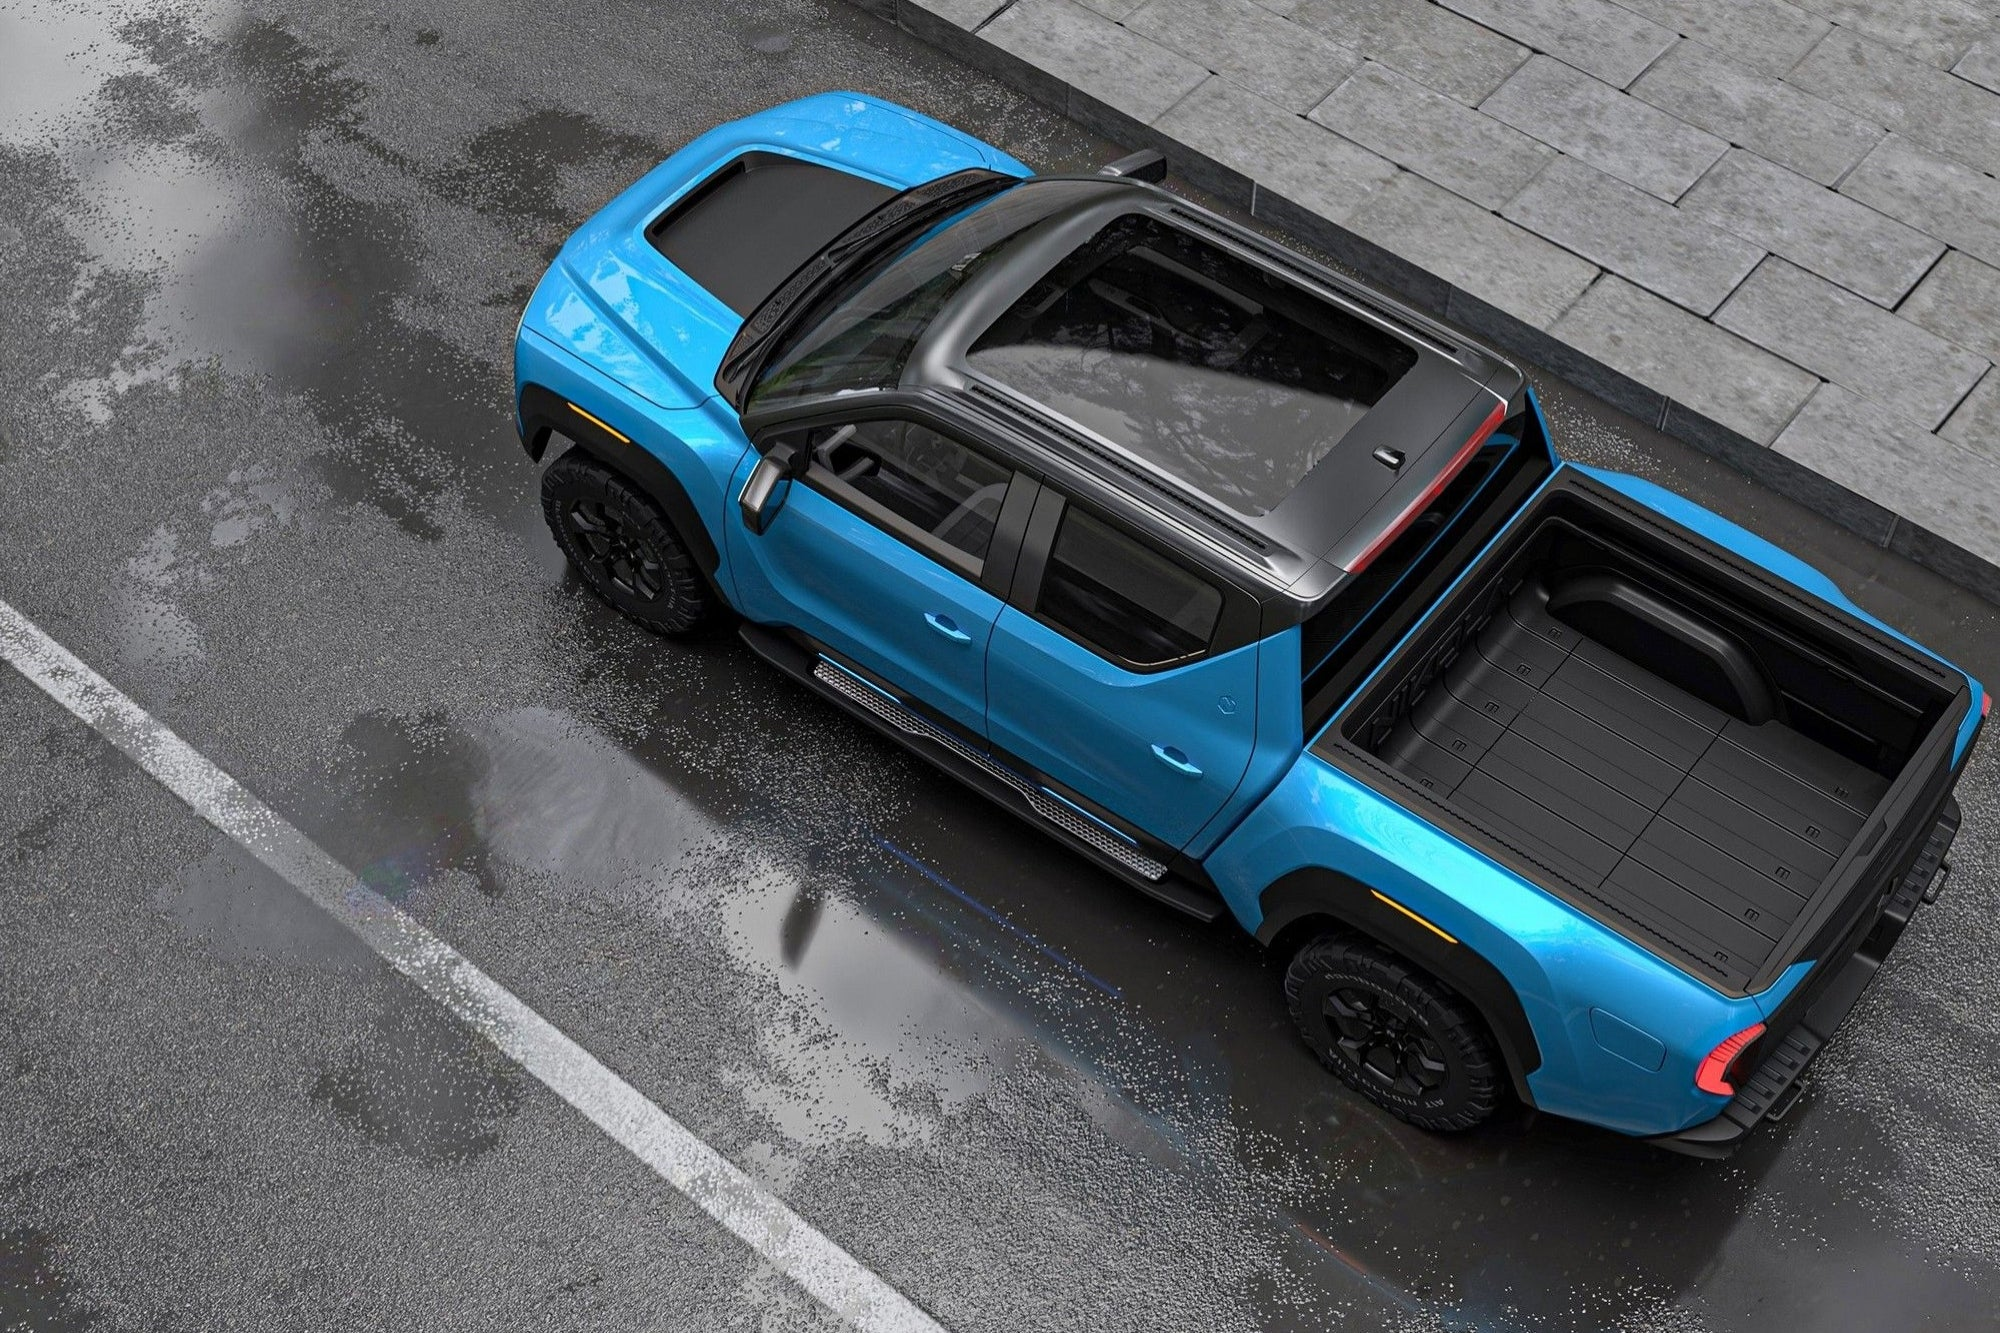 Nikolas hydrogen pickup production was stopped after allegations of fraud